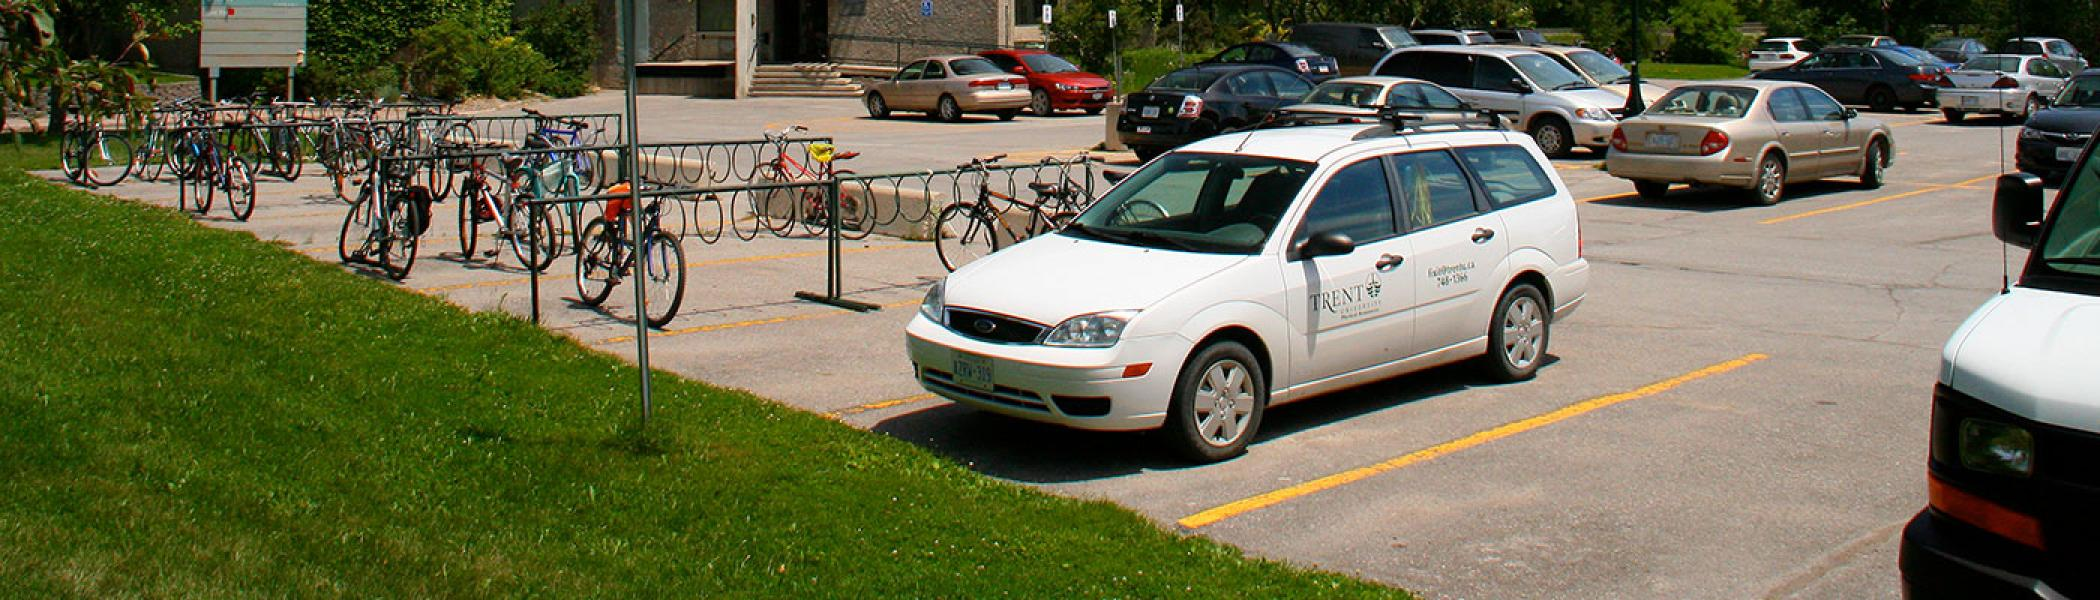 white trent vehicle parked in a lot beside bata library